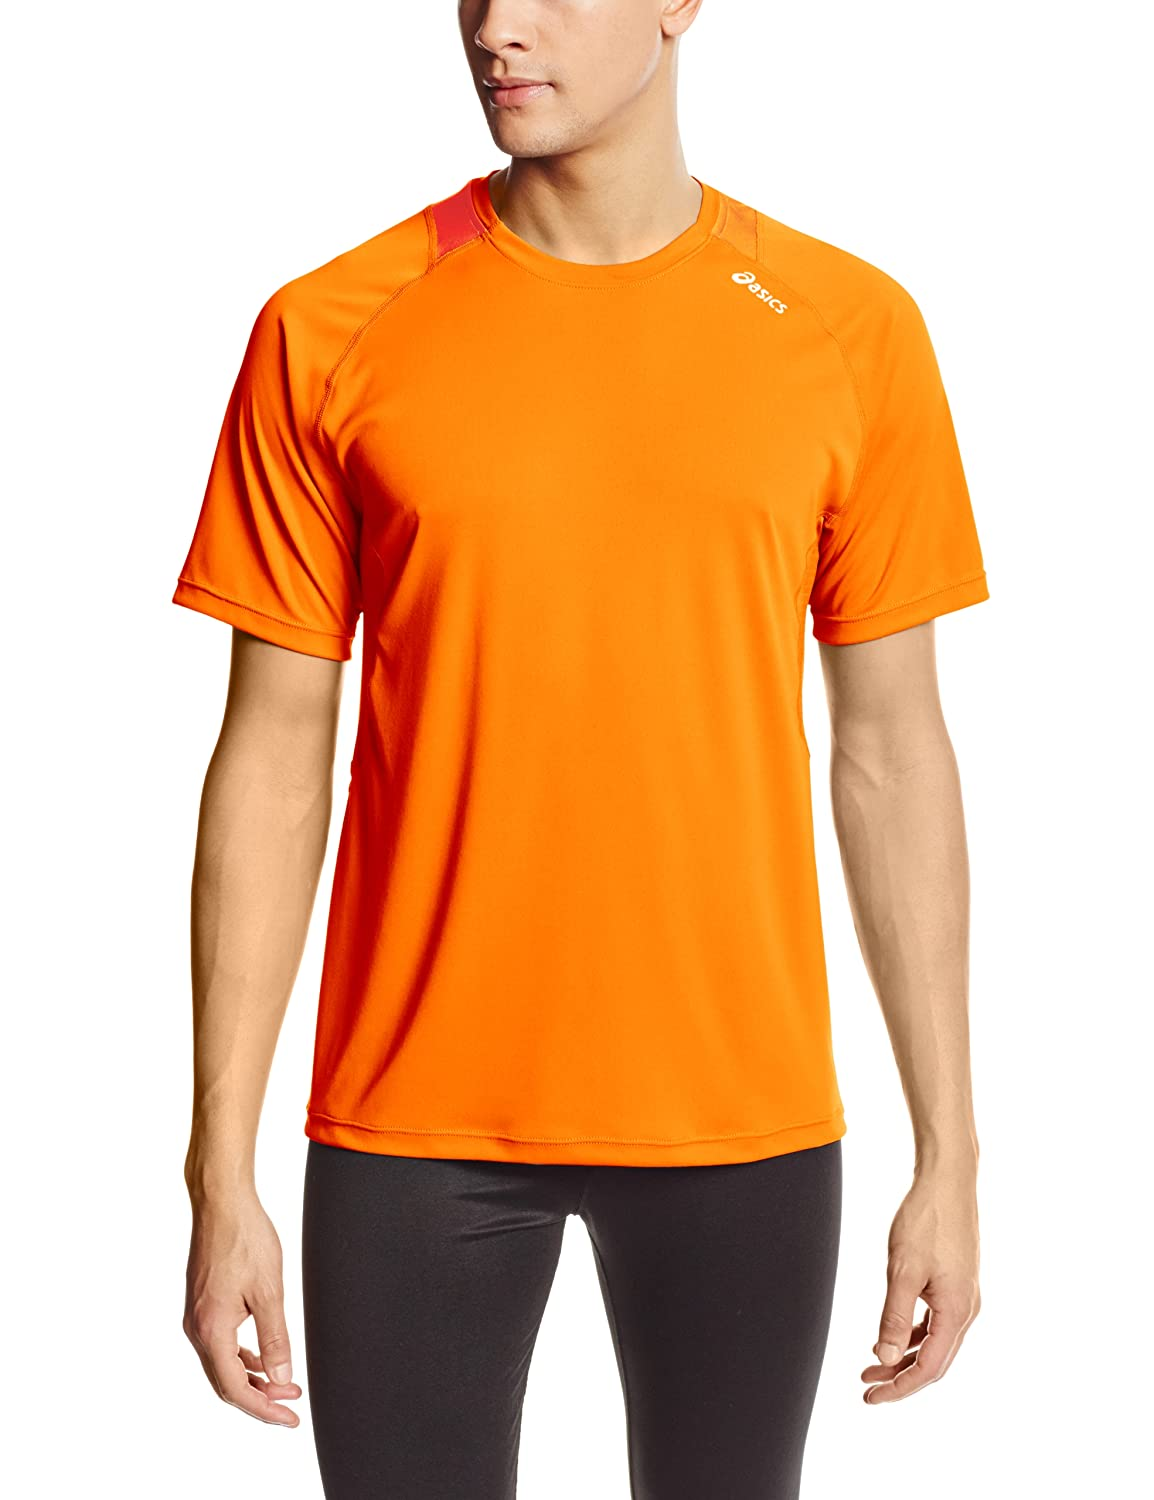 ASICS Herren 's Favorite Short Sleeve Top